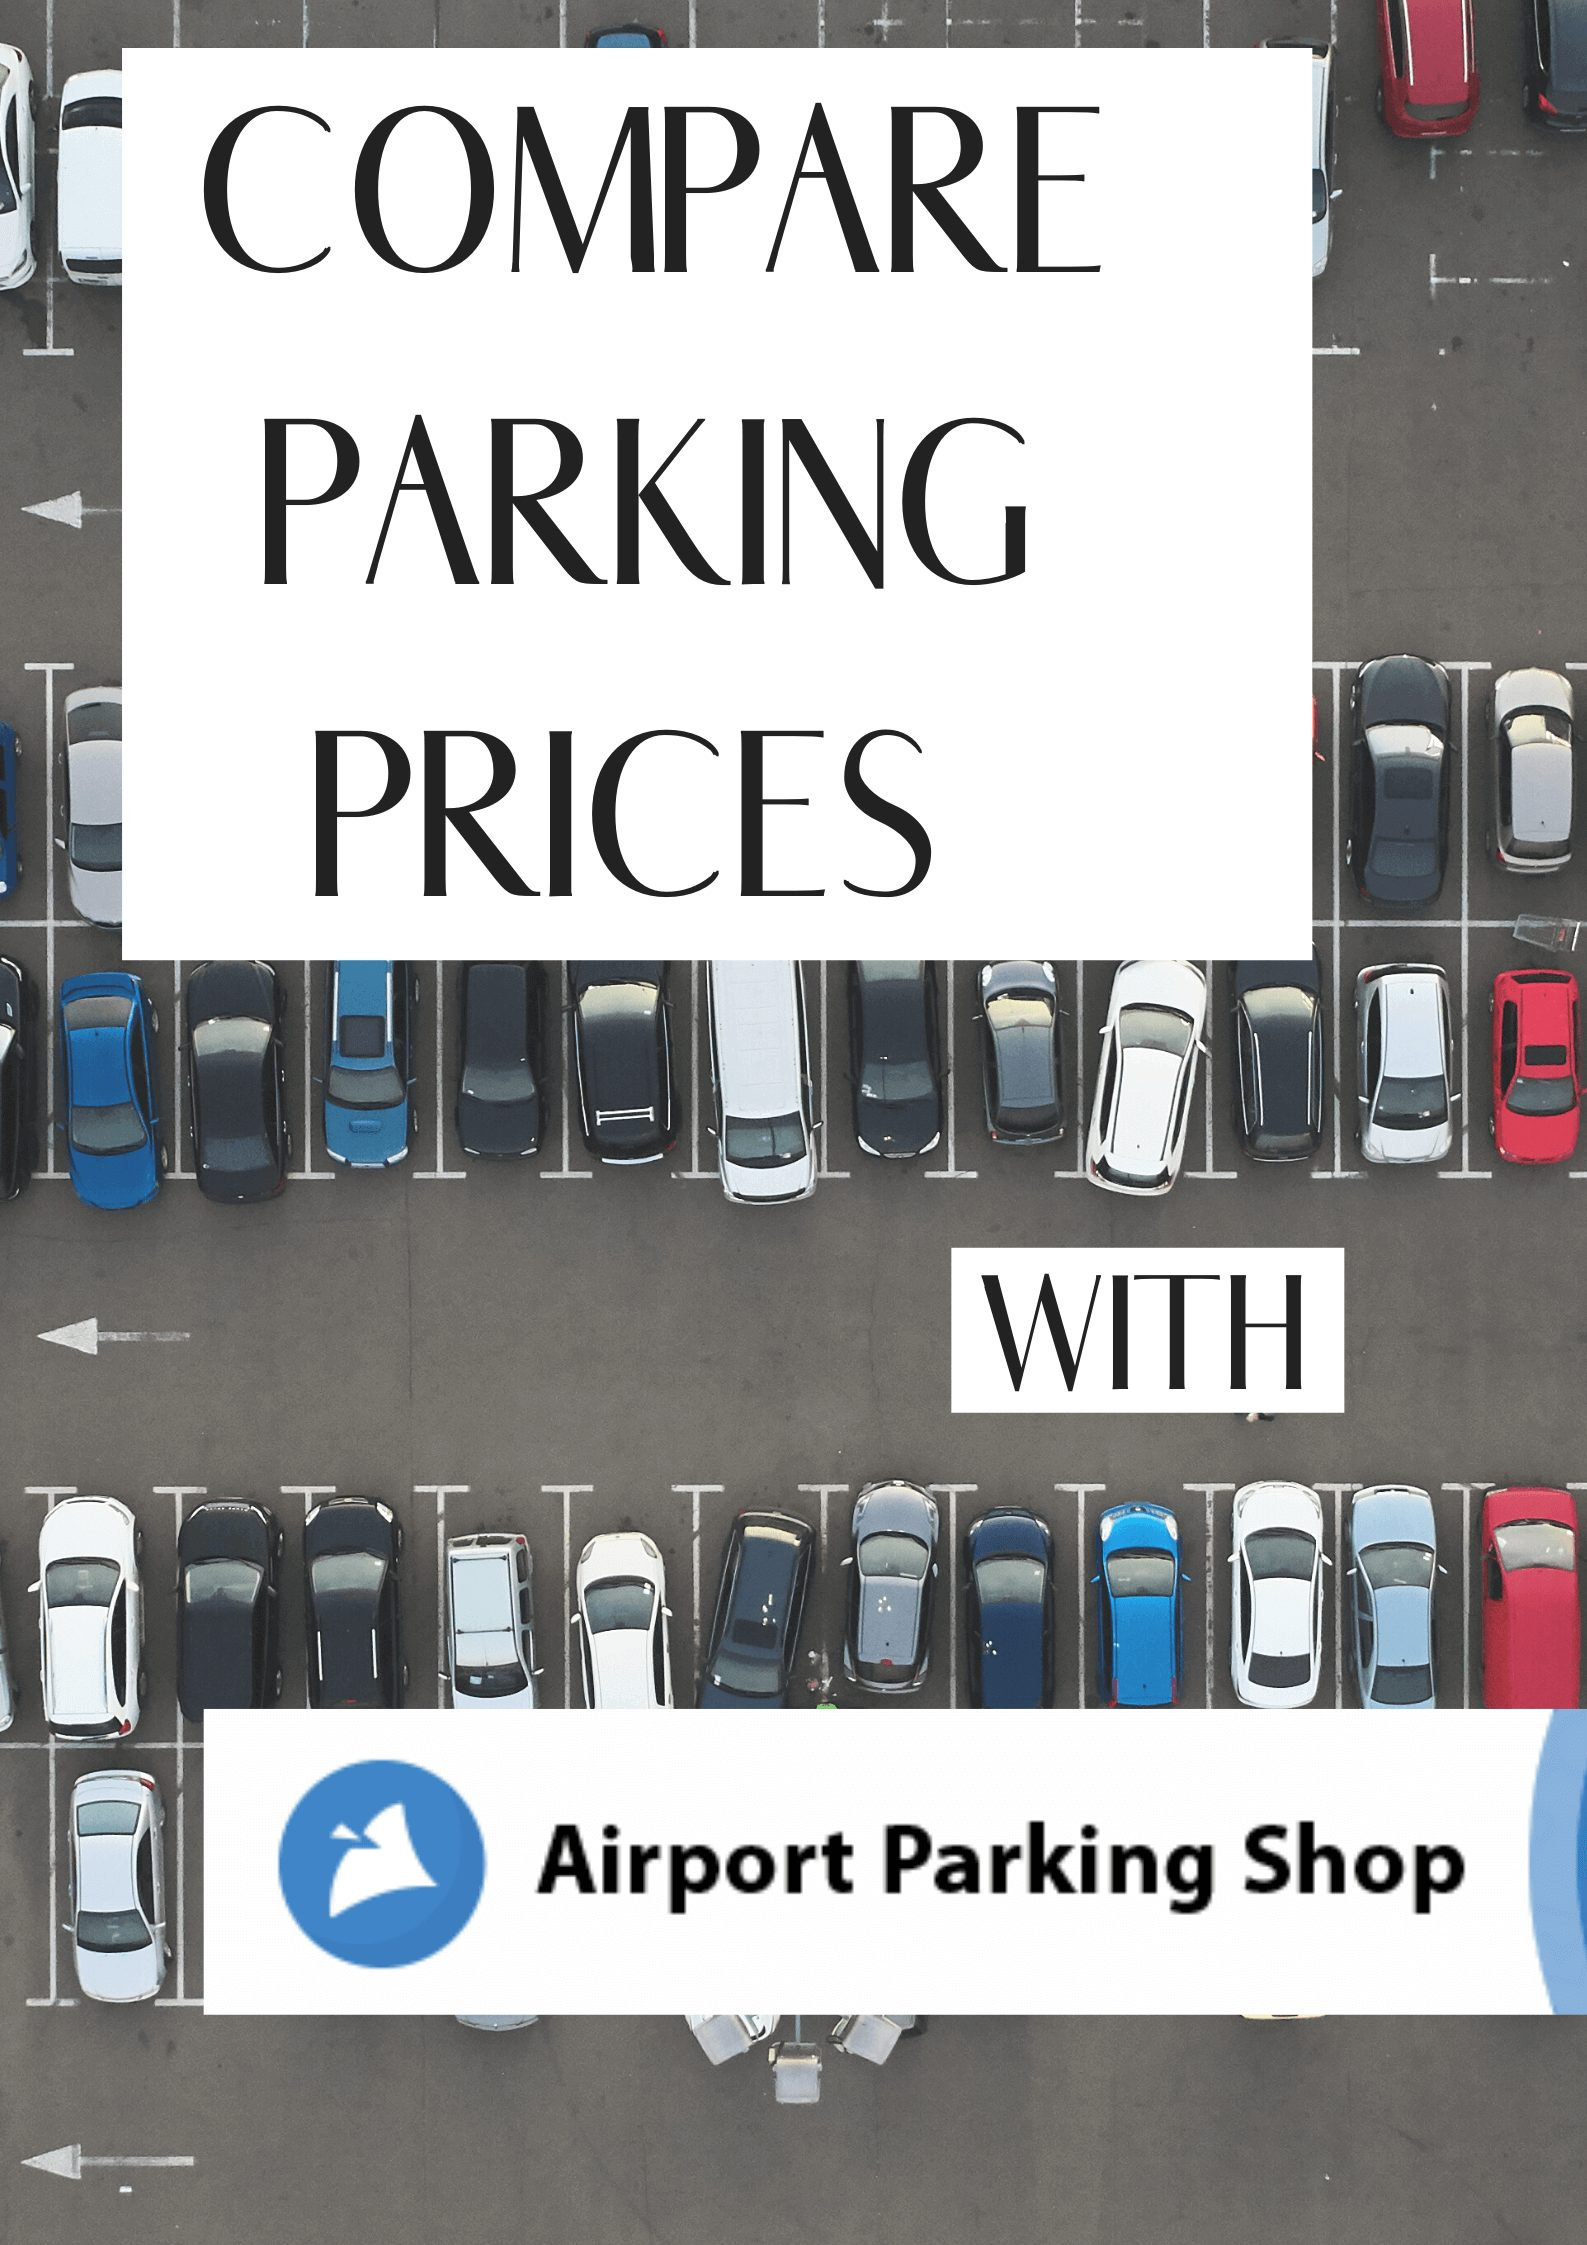 Parking at newcastle airport